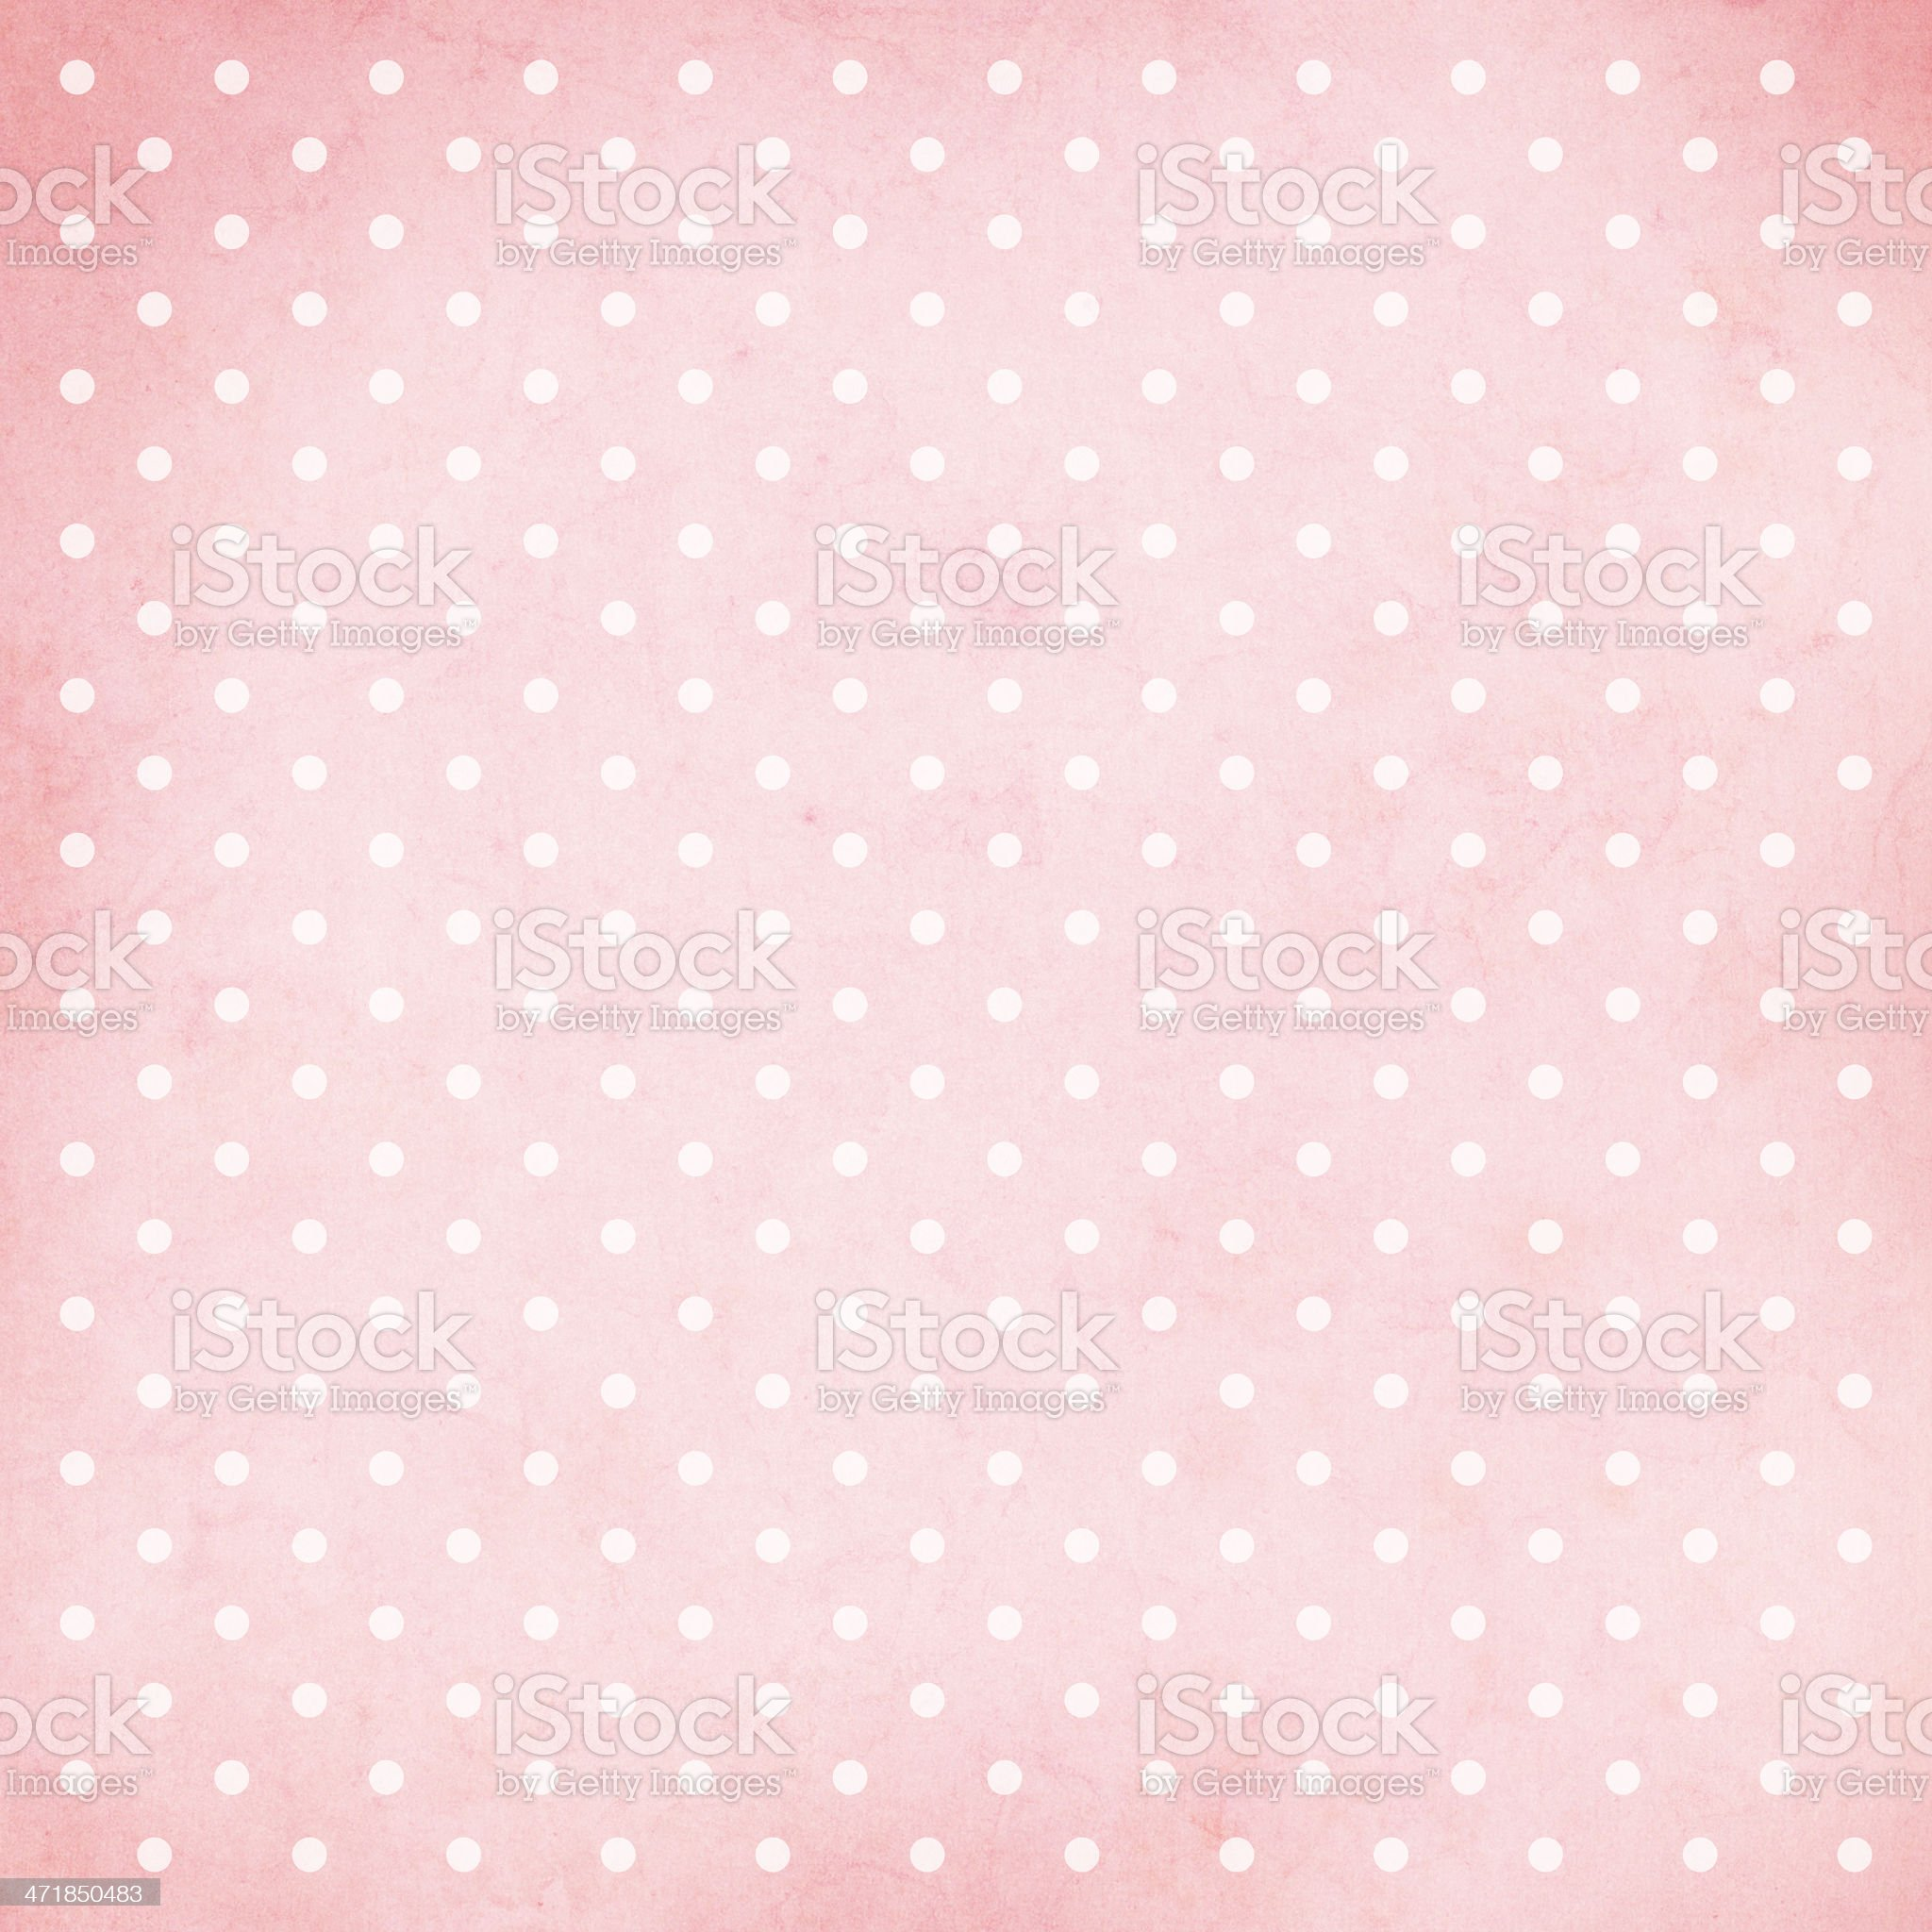 Retro style abstract background royalty-free stock vector art